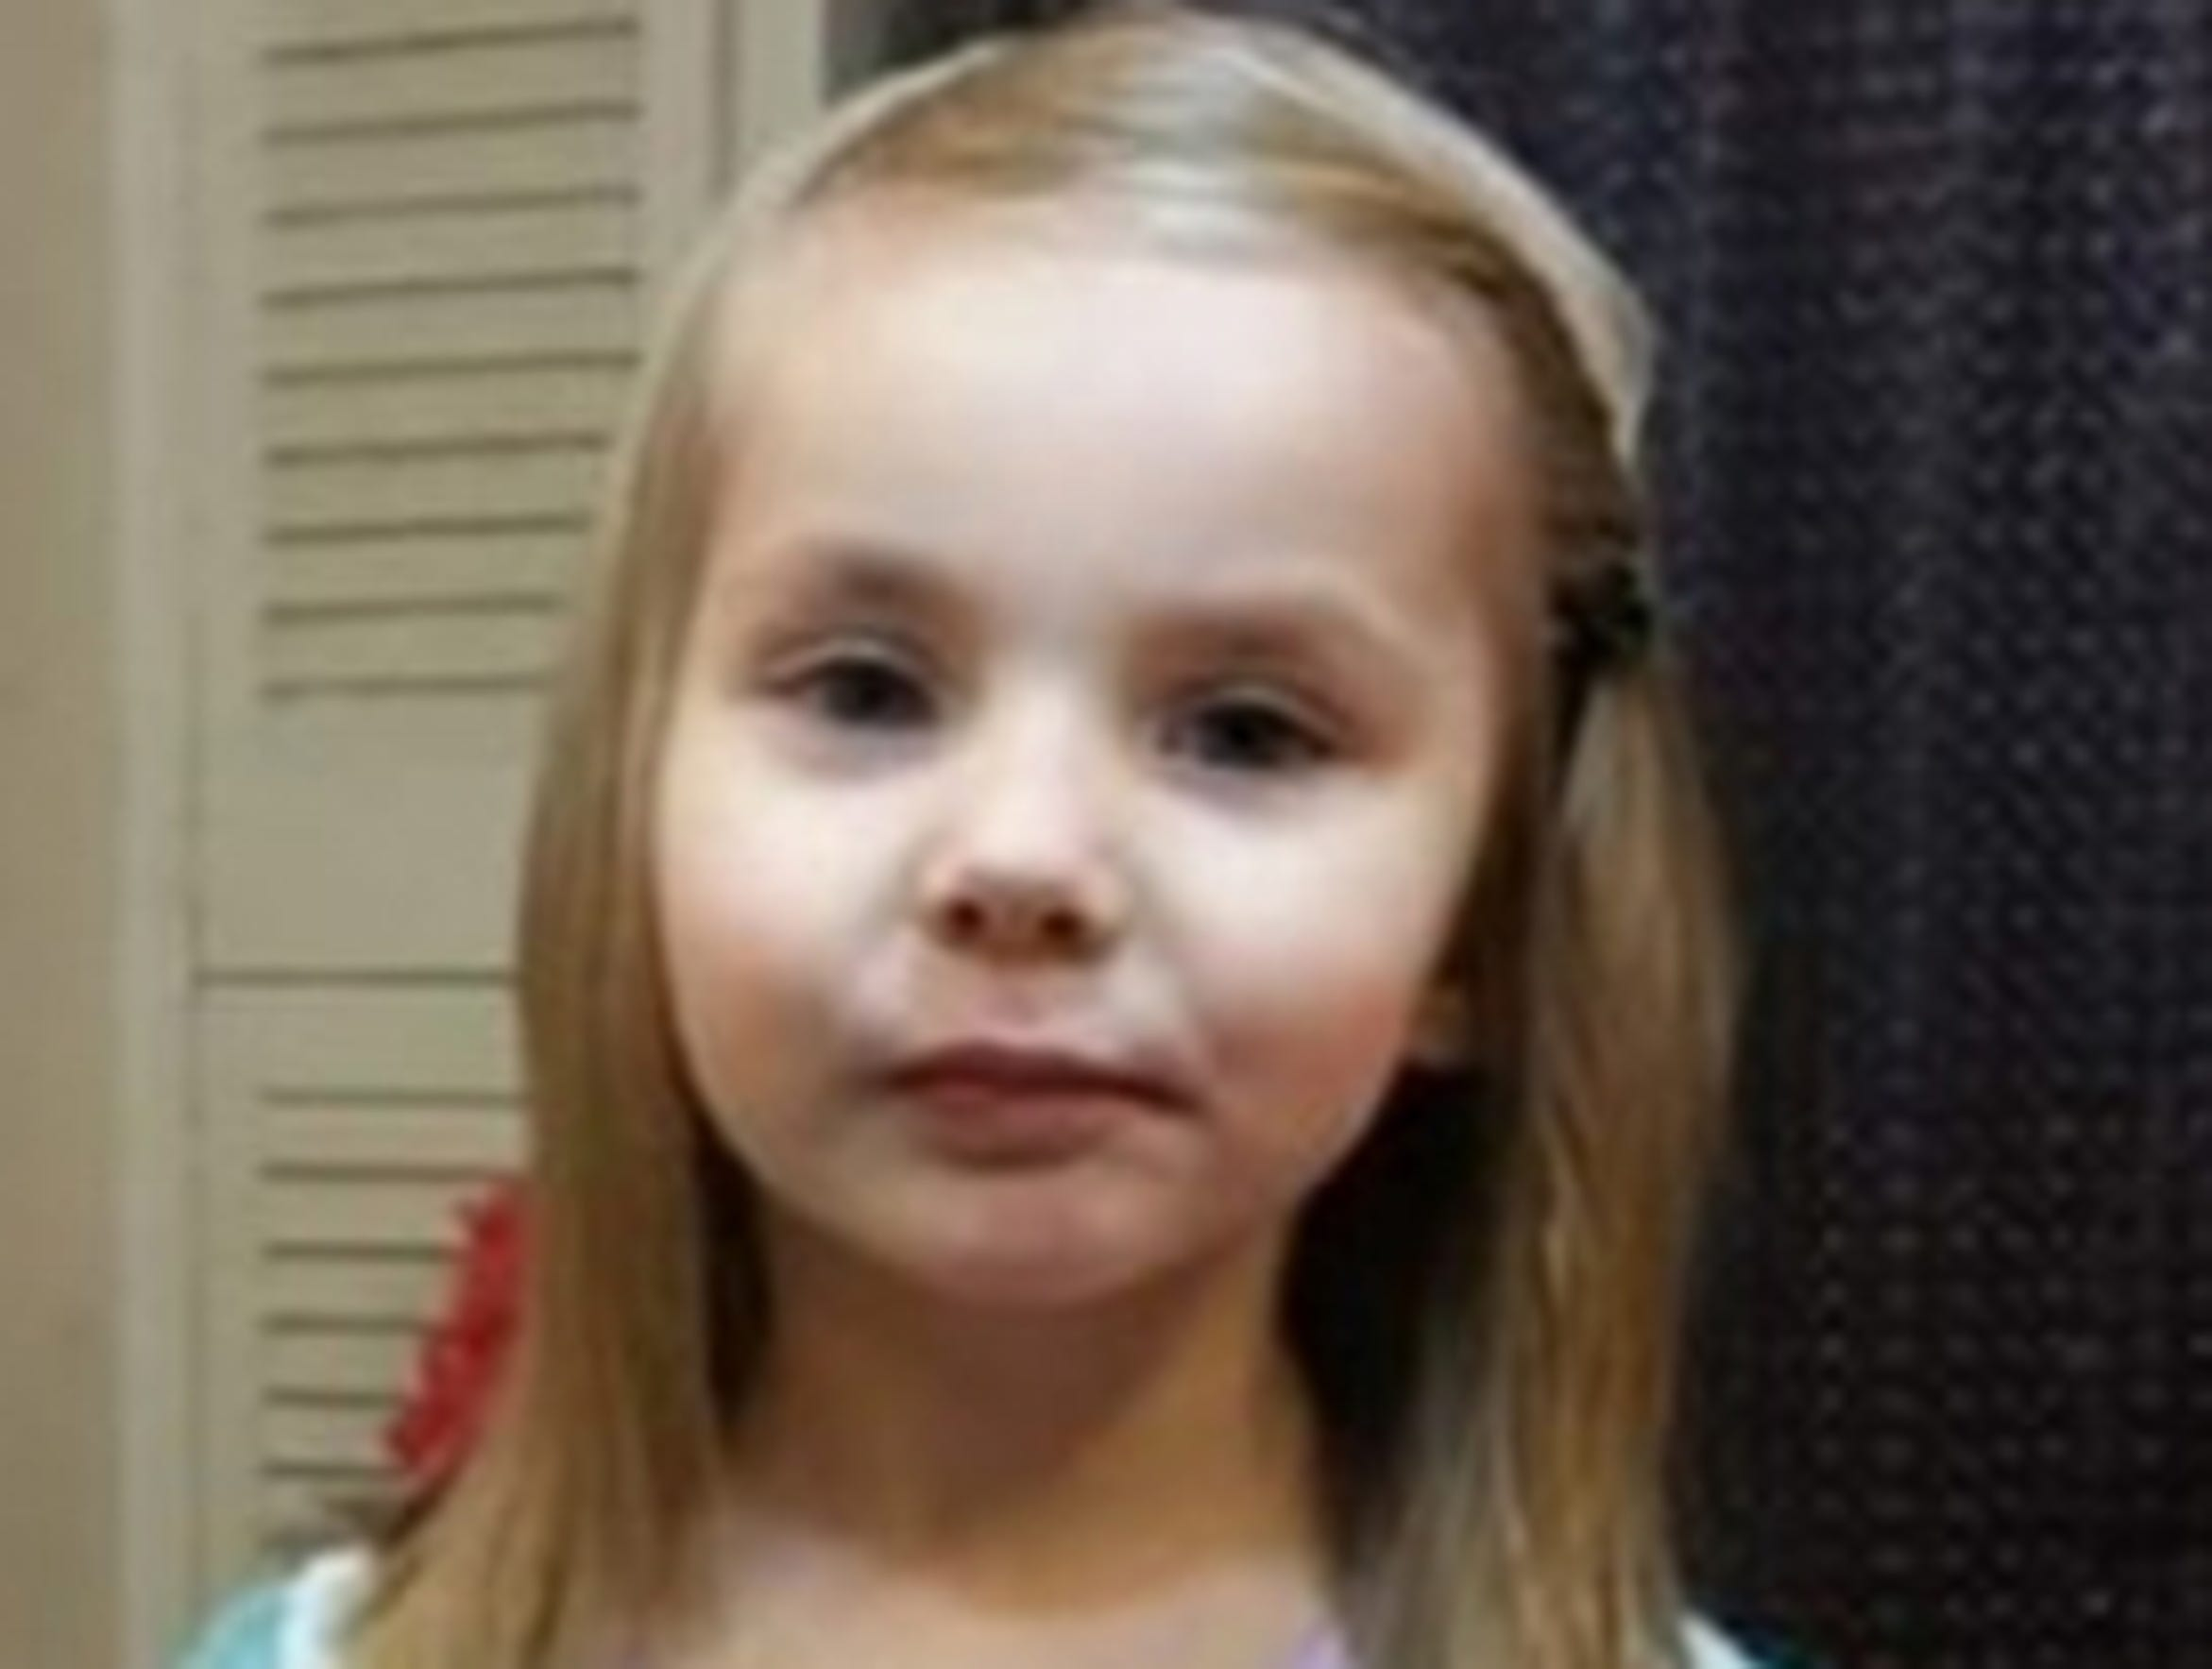 Savannah Walker, 4, and her mother Heidi Walker were